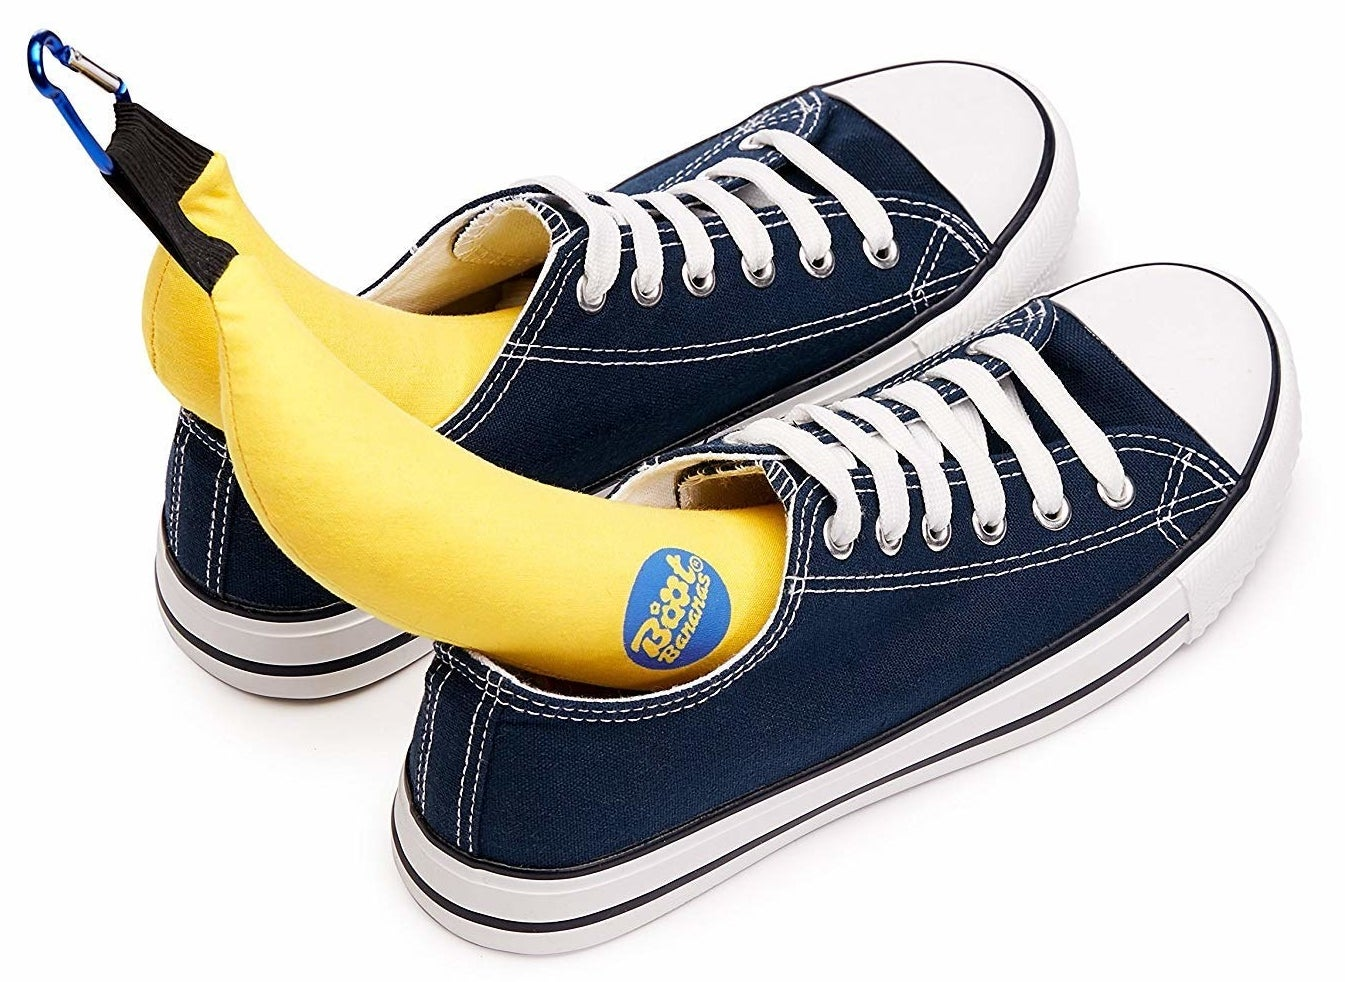 The banana-shaped deodorizers half inserted into a pair of tennis shoes